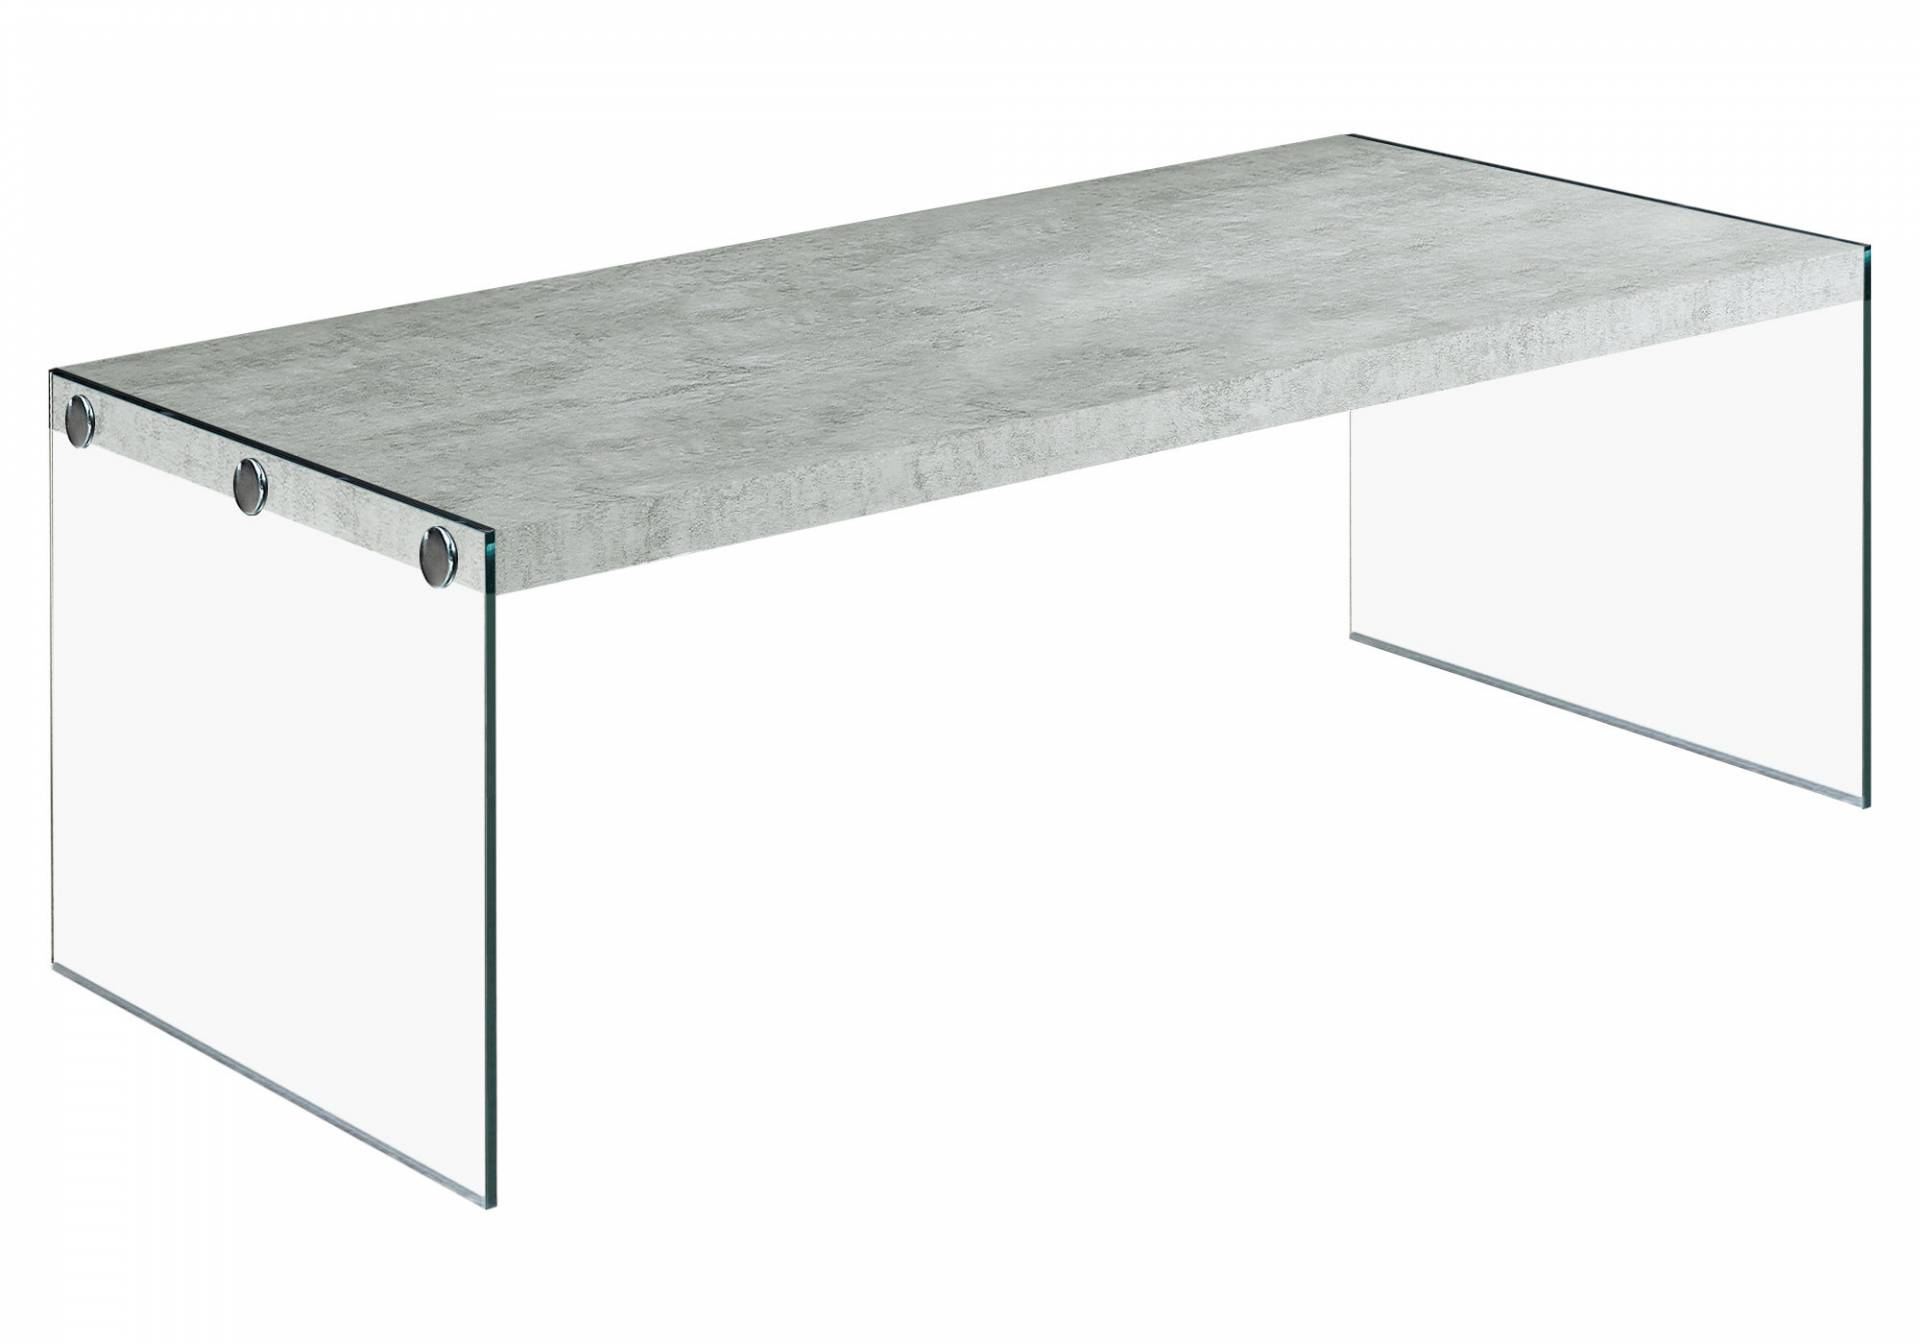 "Monarch 44"" Contemporary Tempered Glass Base Accent Coffee Table - Grey Cement-Look Top Finish from Monarch"